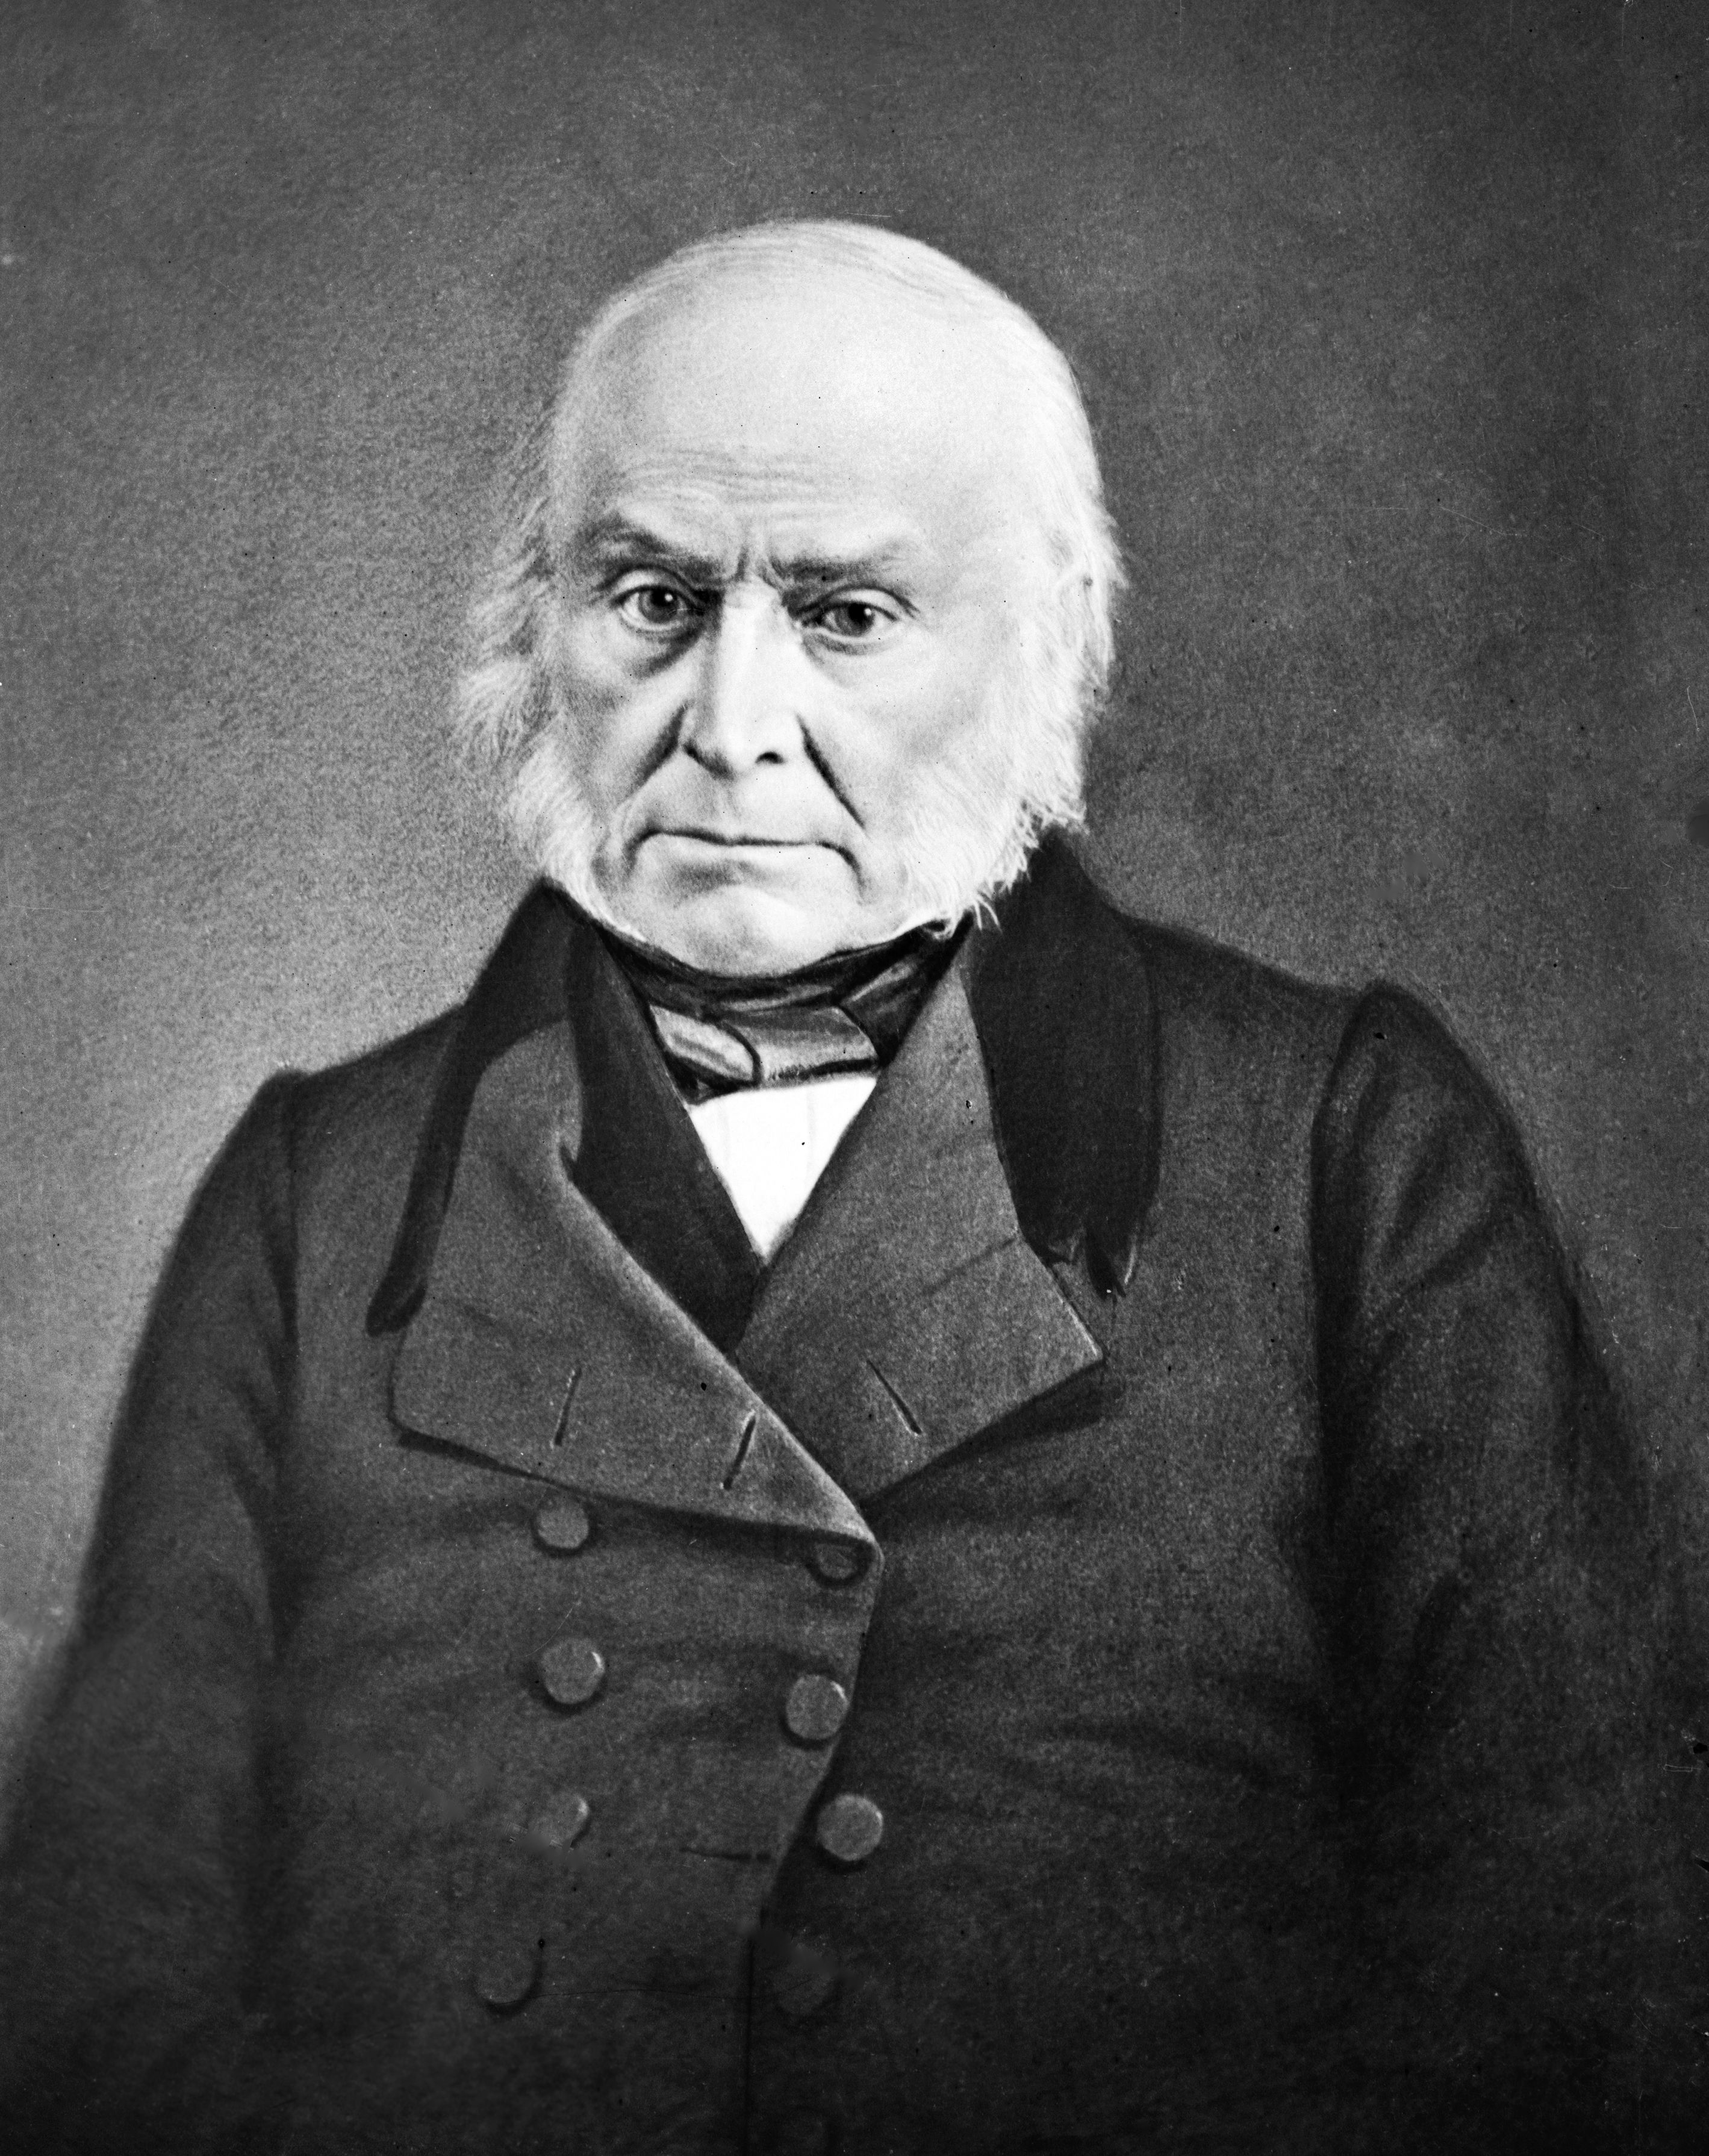 john quincey adams portait | 6th President of the United States